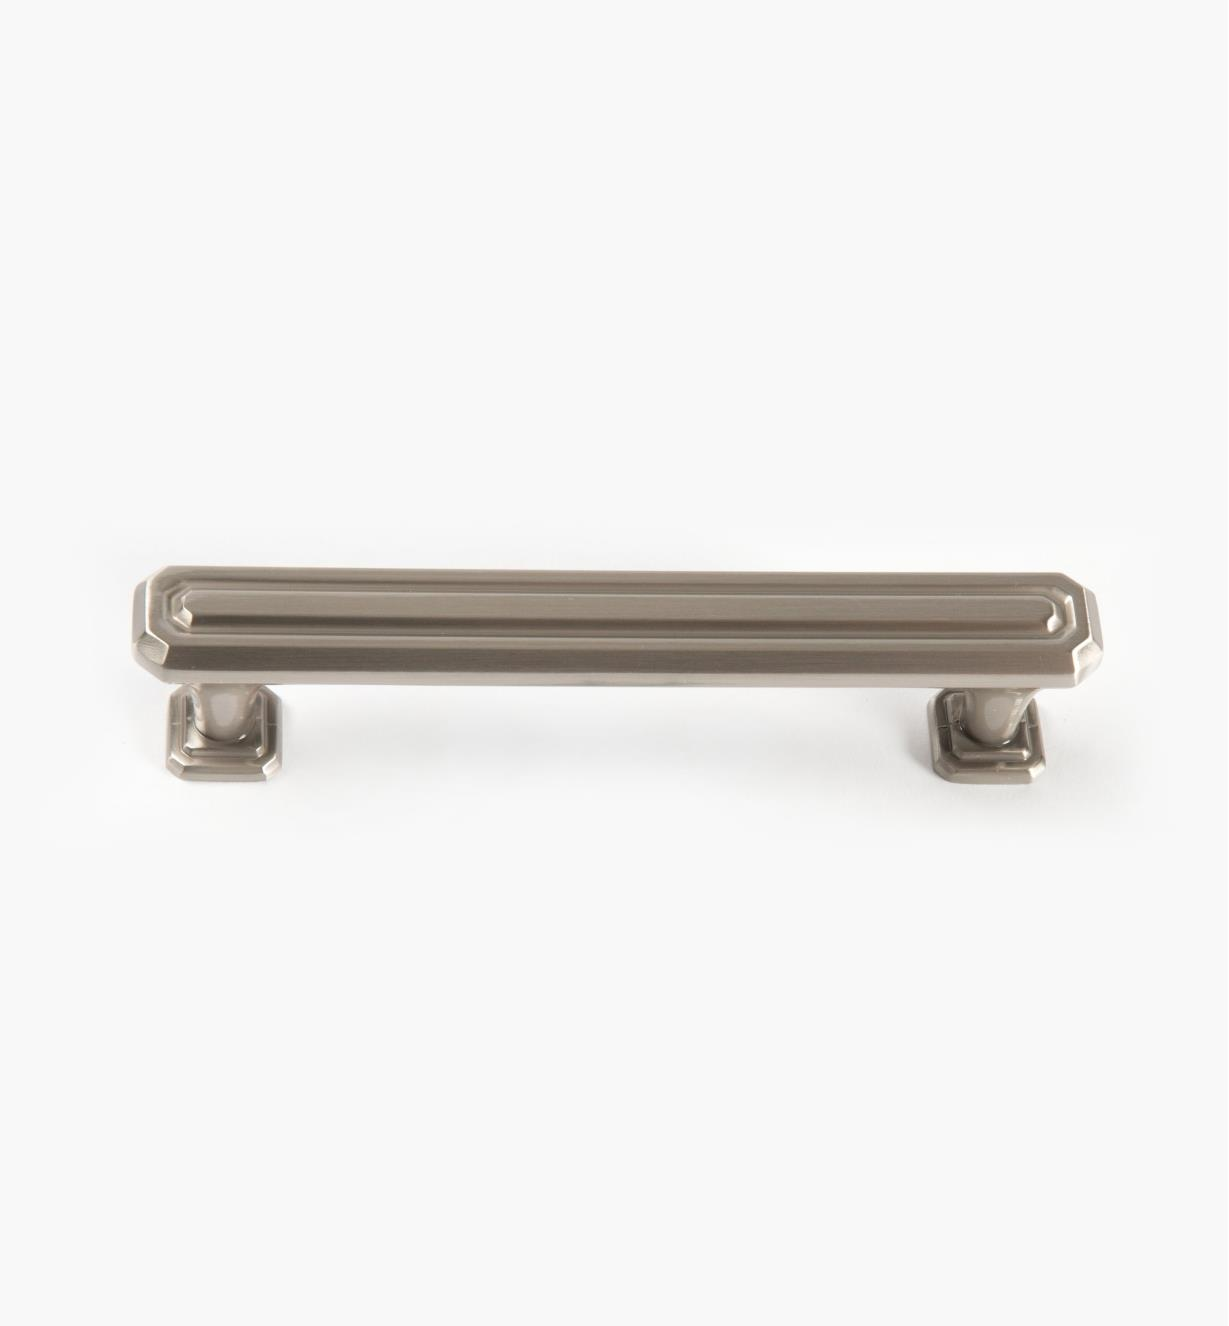 02A1628 - Wells Satin Nickel 128mm x 37mm Handle, each